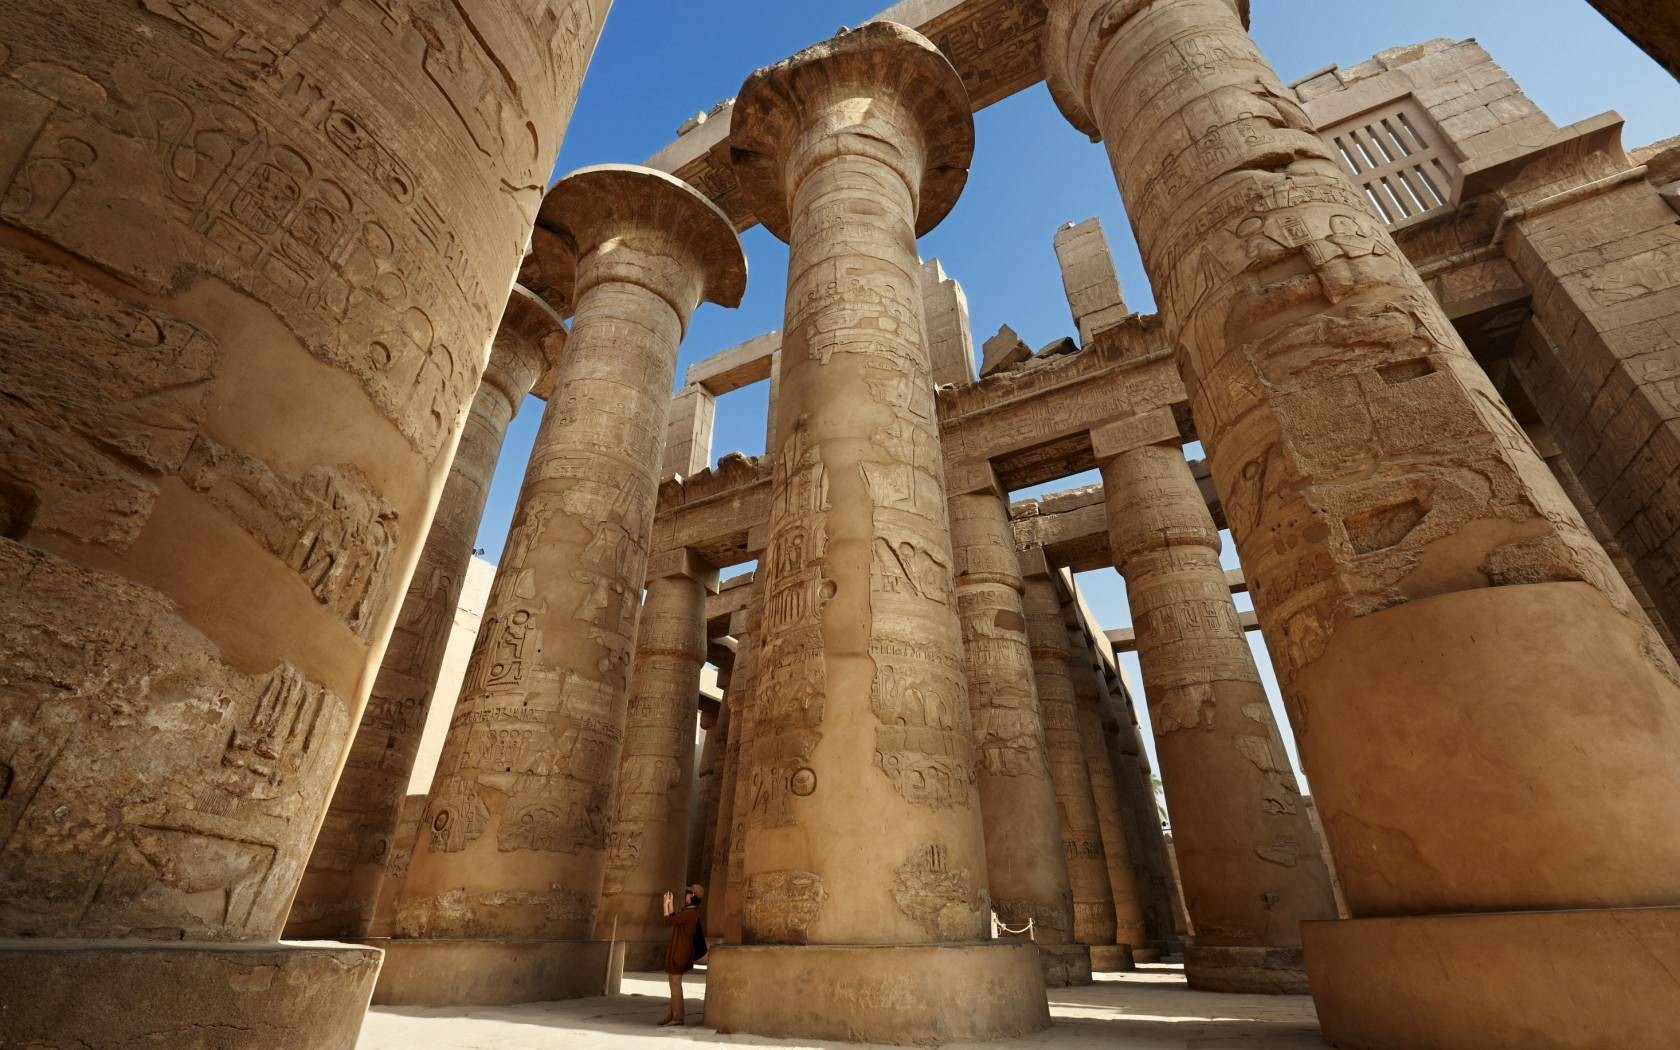 Day tour to Luxor super from Hurghada